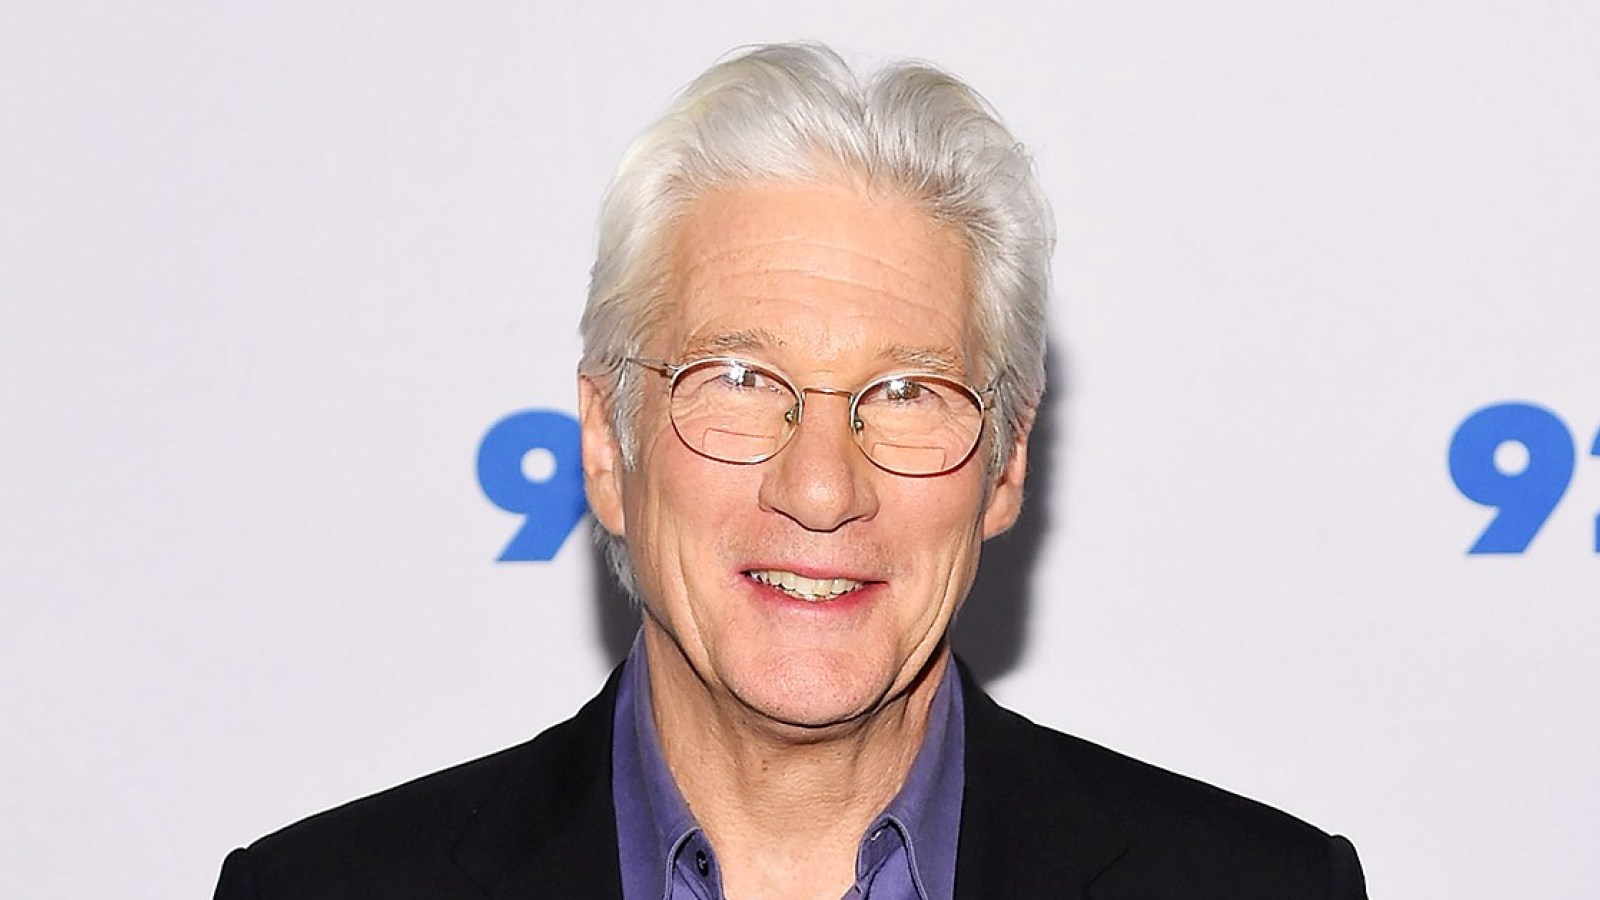 Richard Gere Reflects on His 'Hustler' Days and Insecurities